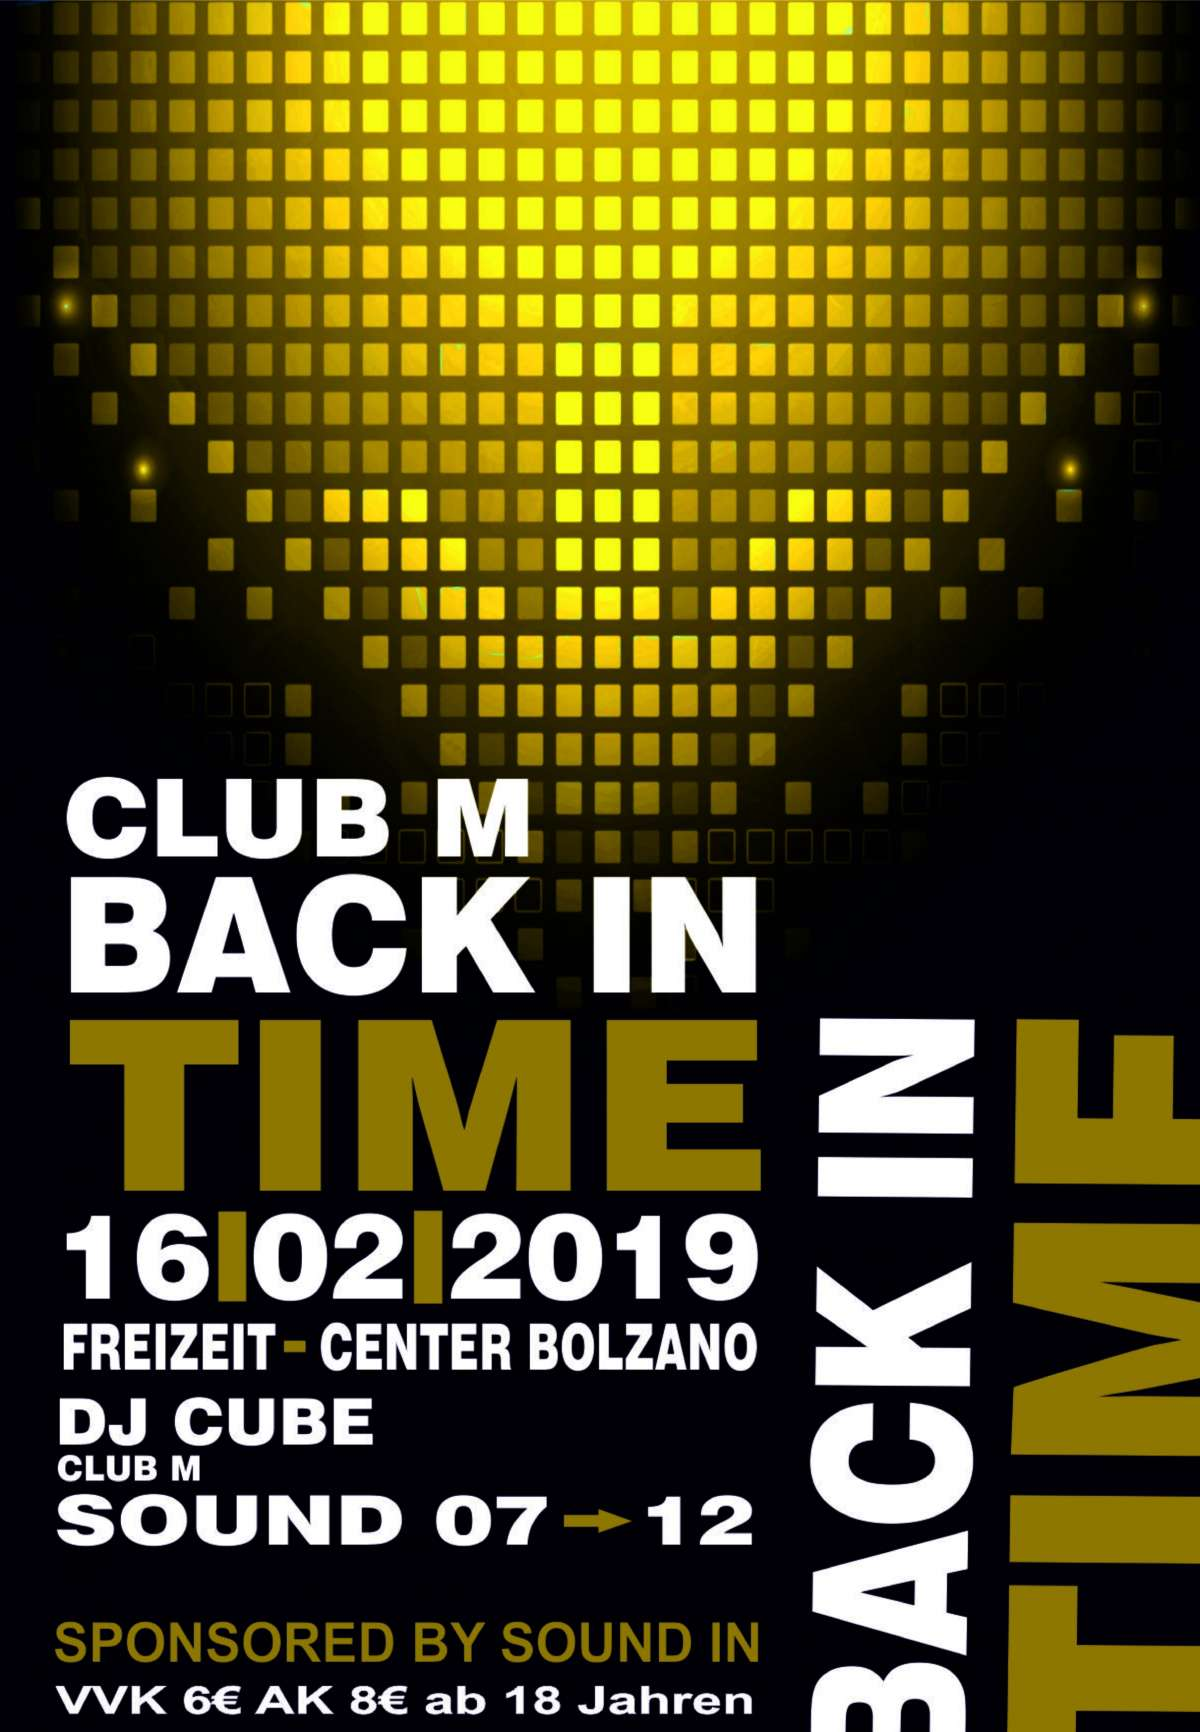 Club M Back in Time